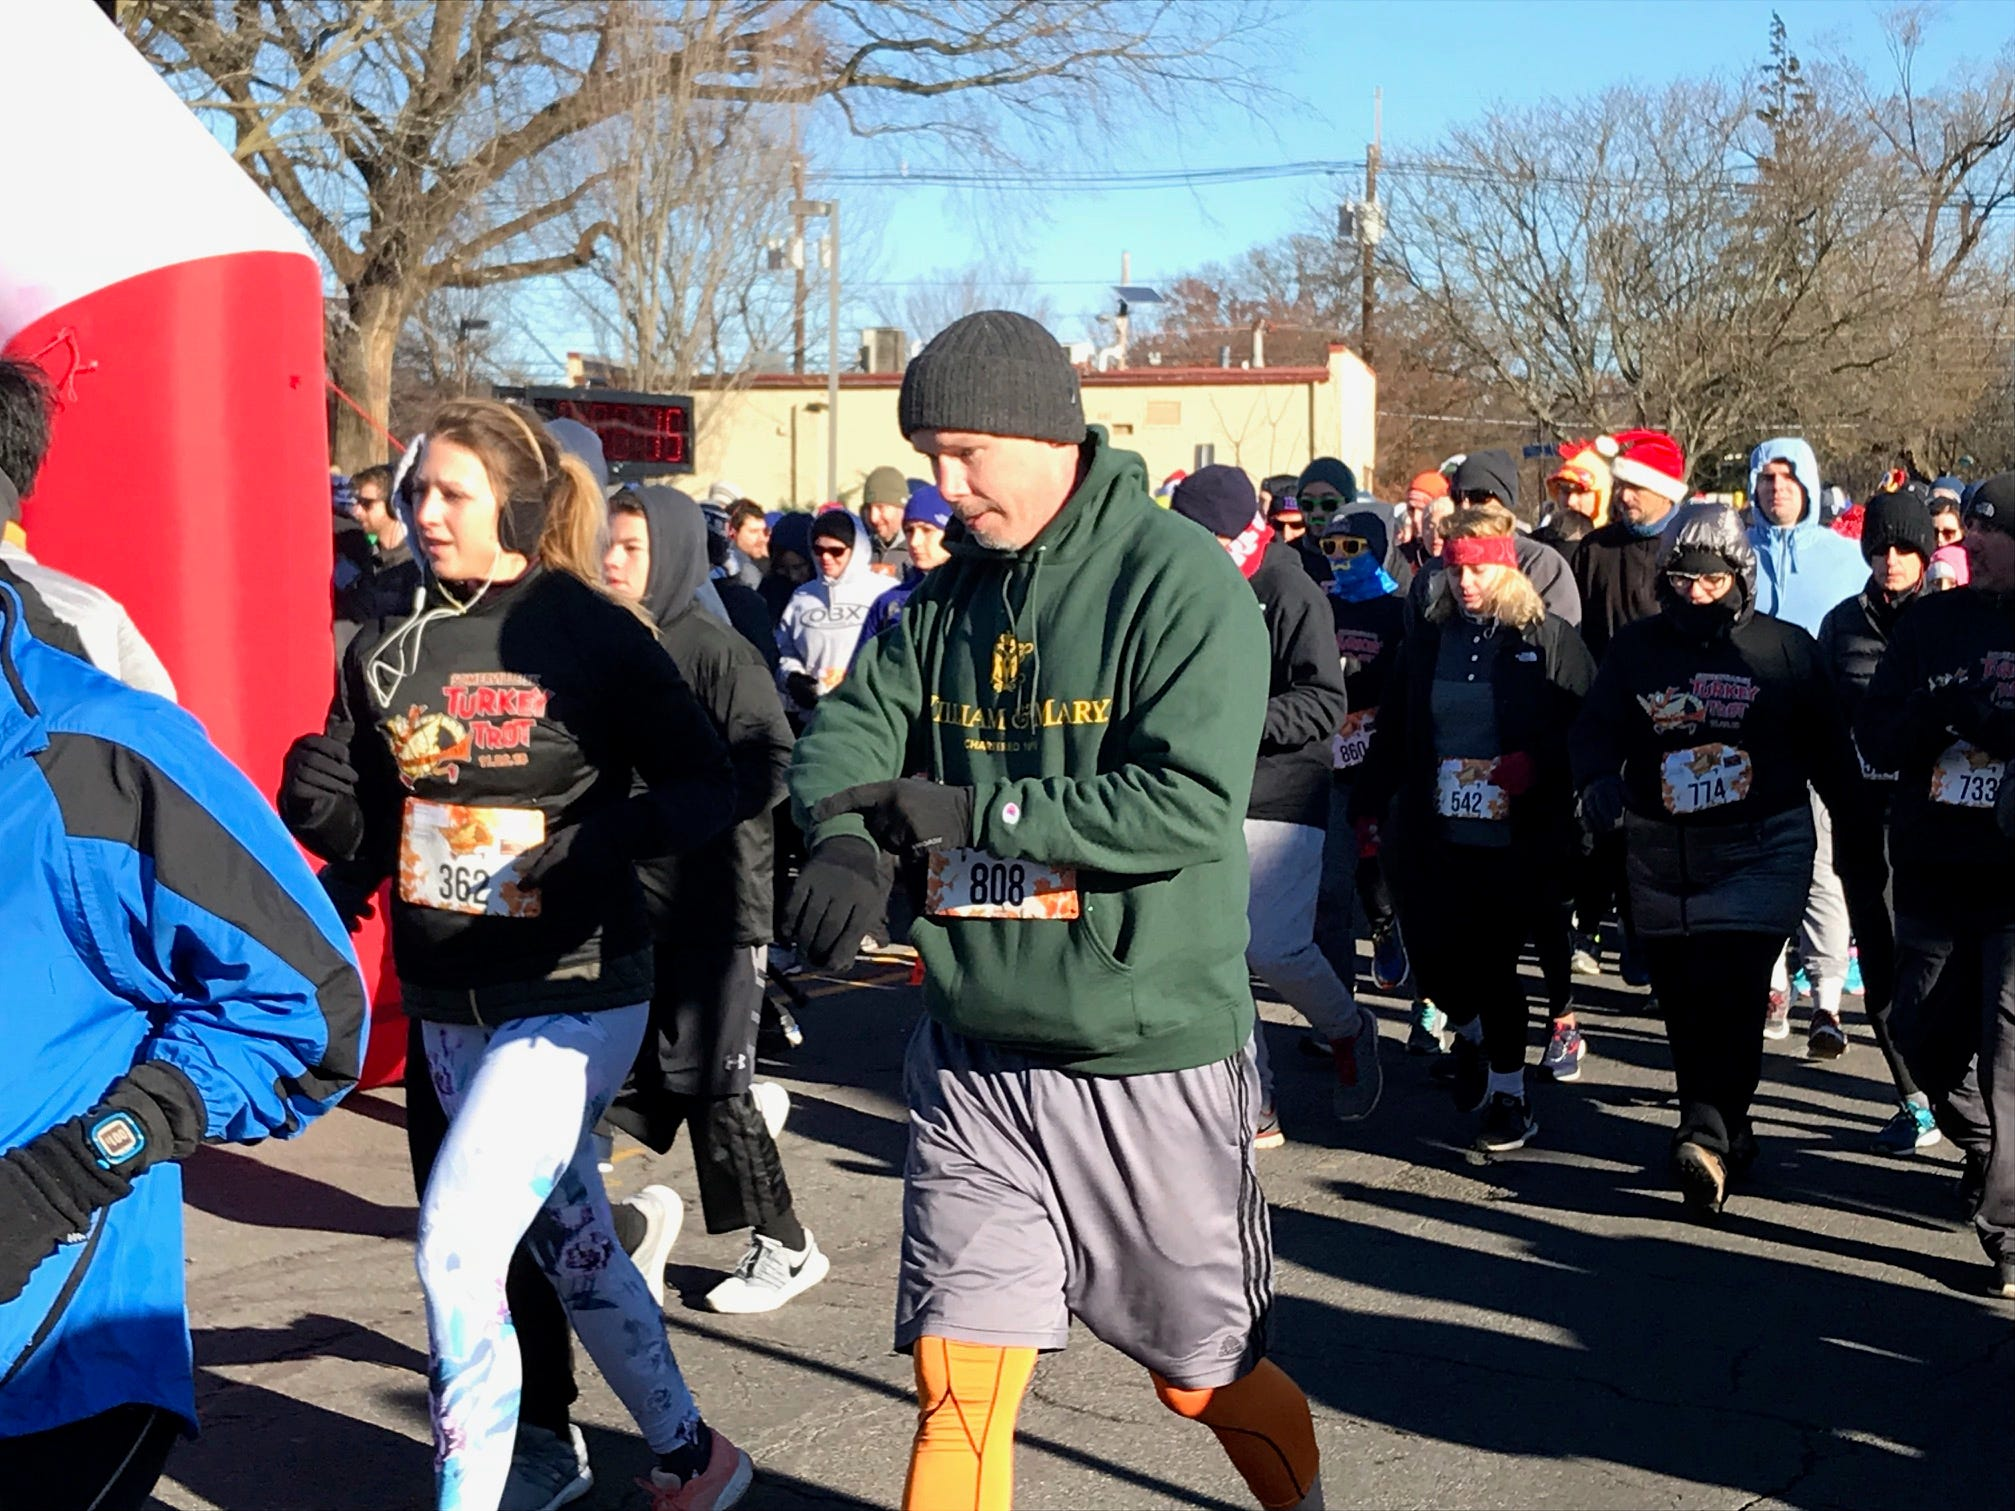 Runners in the Somerville Turkey Trot on Thanksgiving Day.